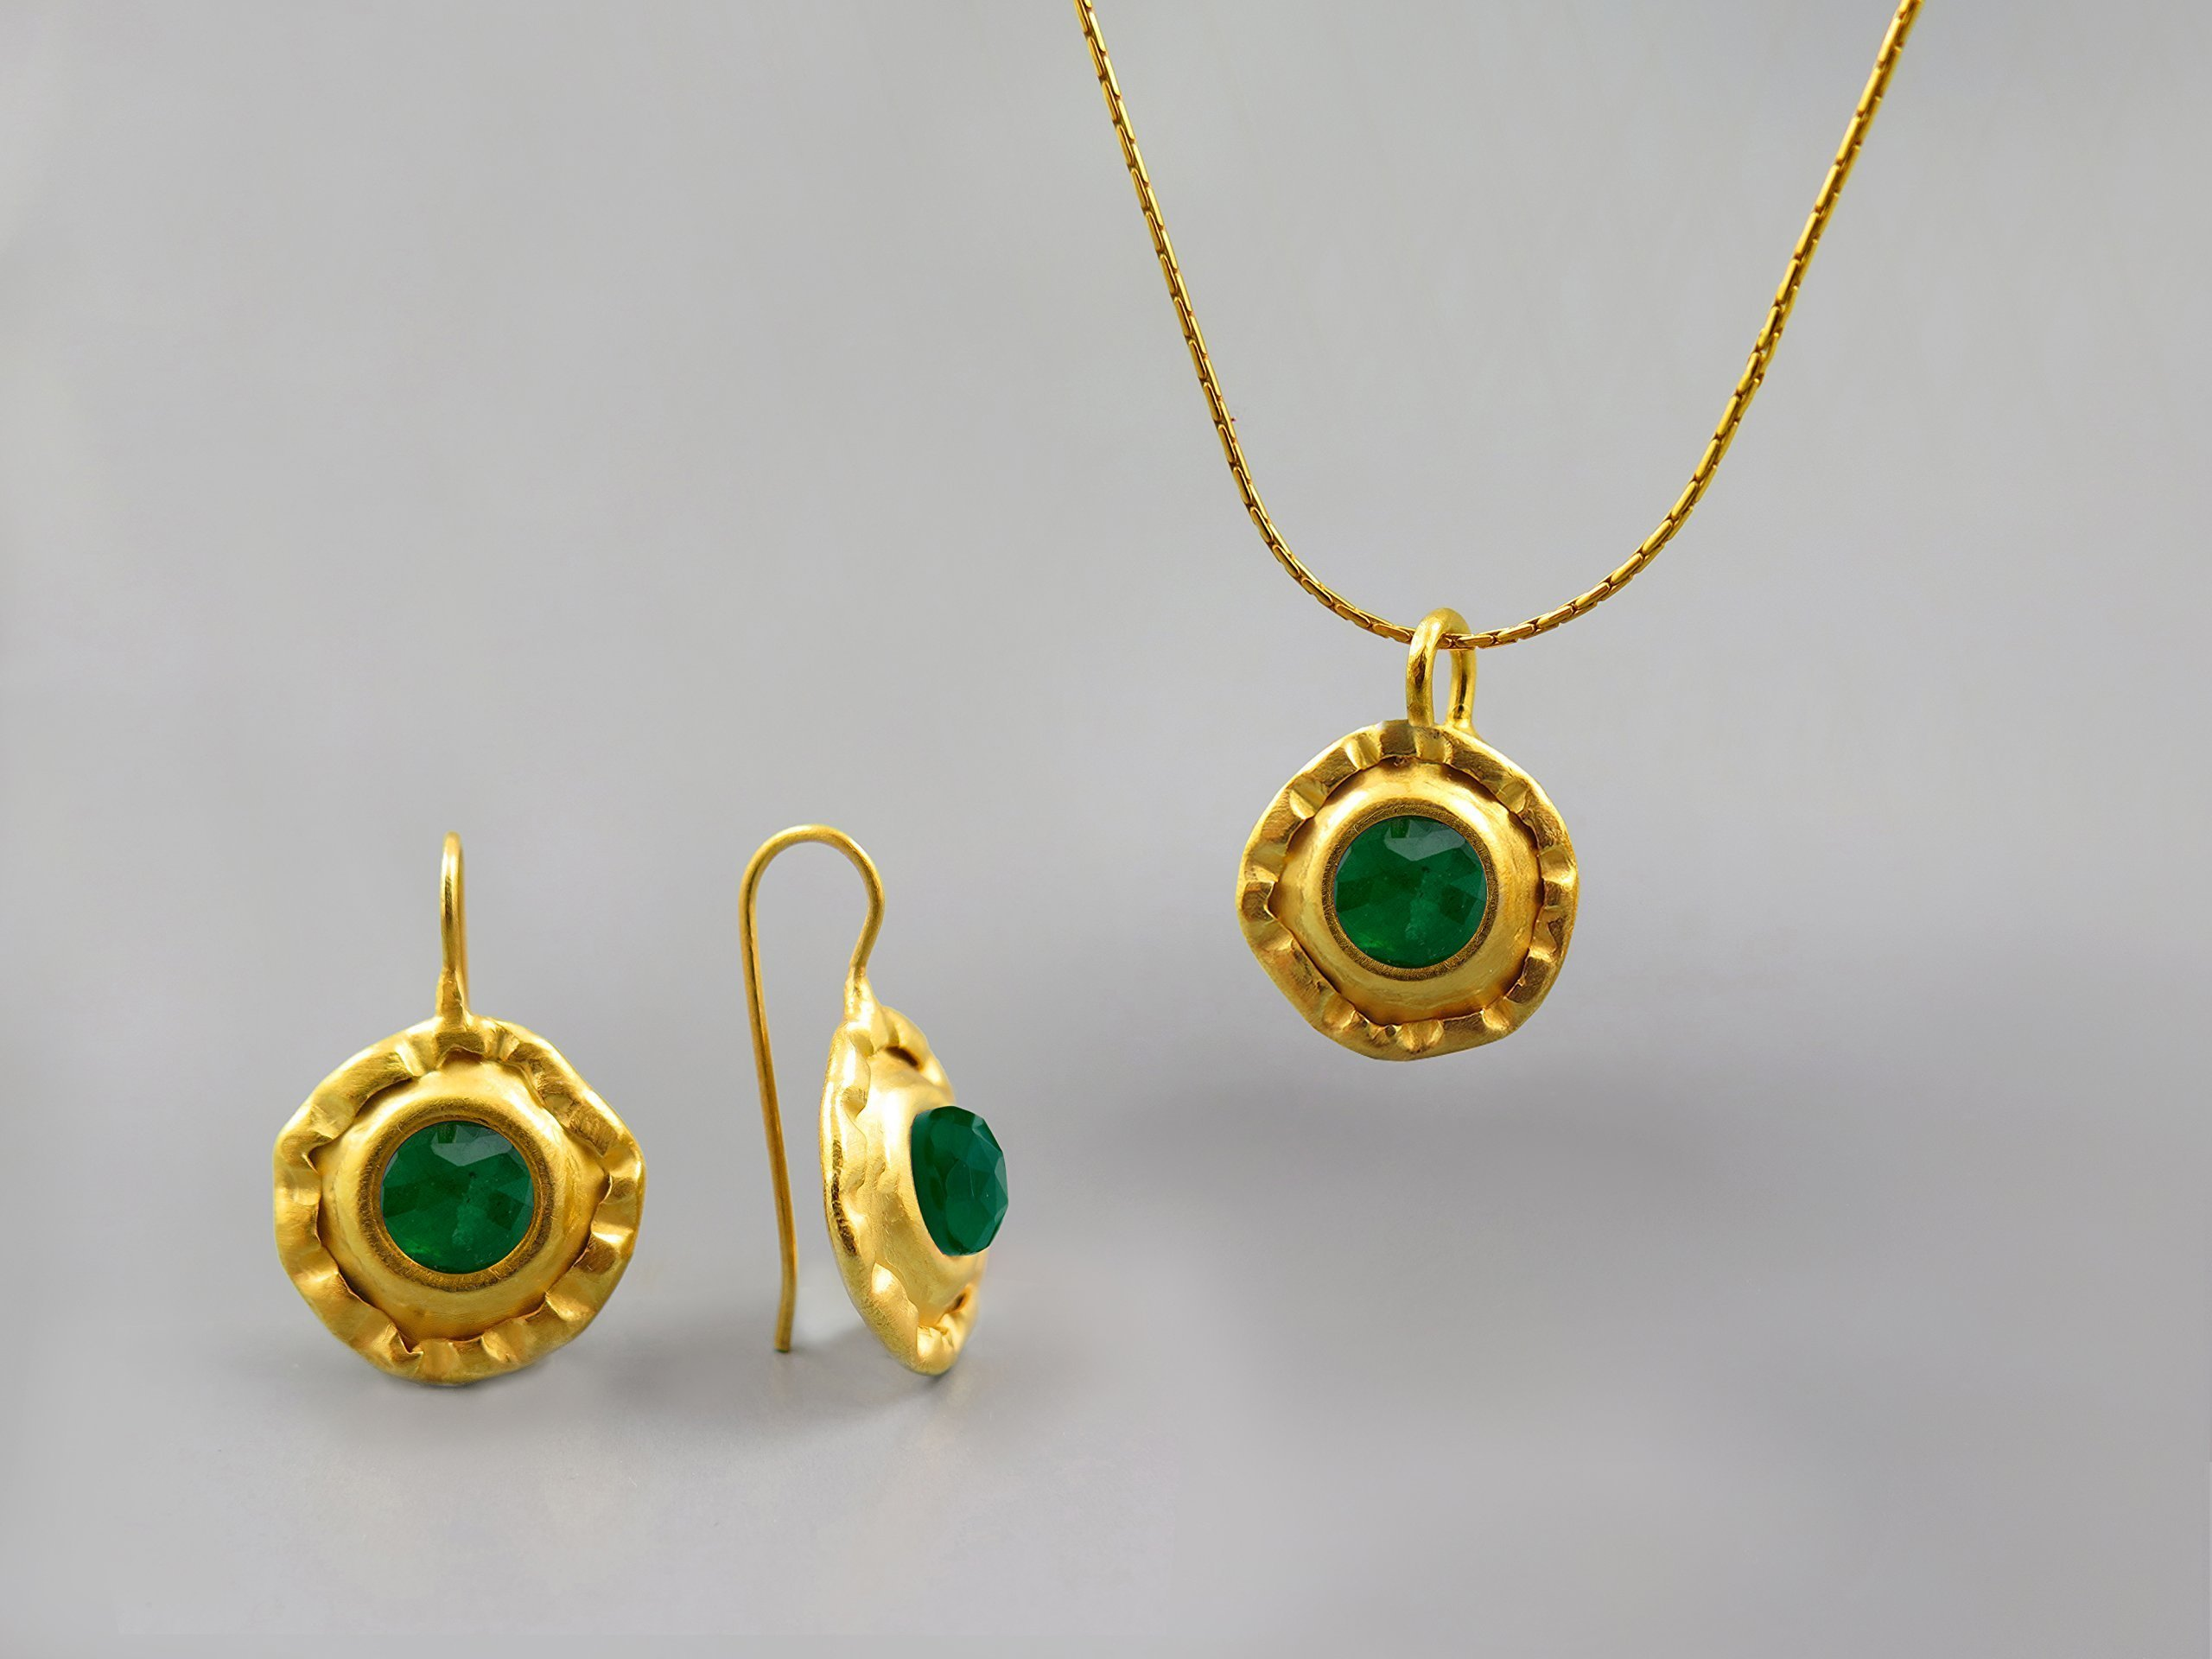 Elegant Green Emerald Precious Gemstones Jewelry Set For Women 24K 18K 14K Gold Plated May Birthstone Jewelry Emerald Necklace Pendant Earring Set Gift for Women Genuine Stone Jewelry Custom Jewelry by Chen Fuchs Jewelry